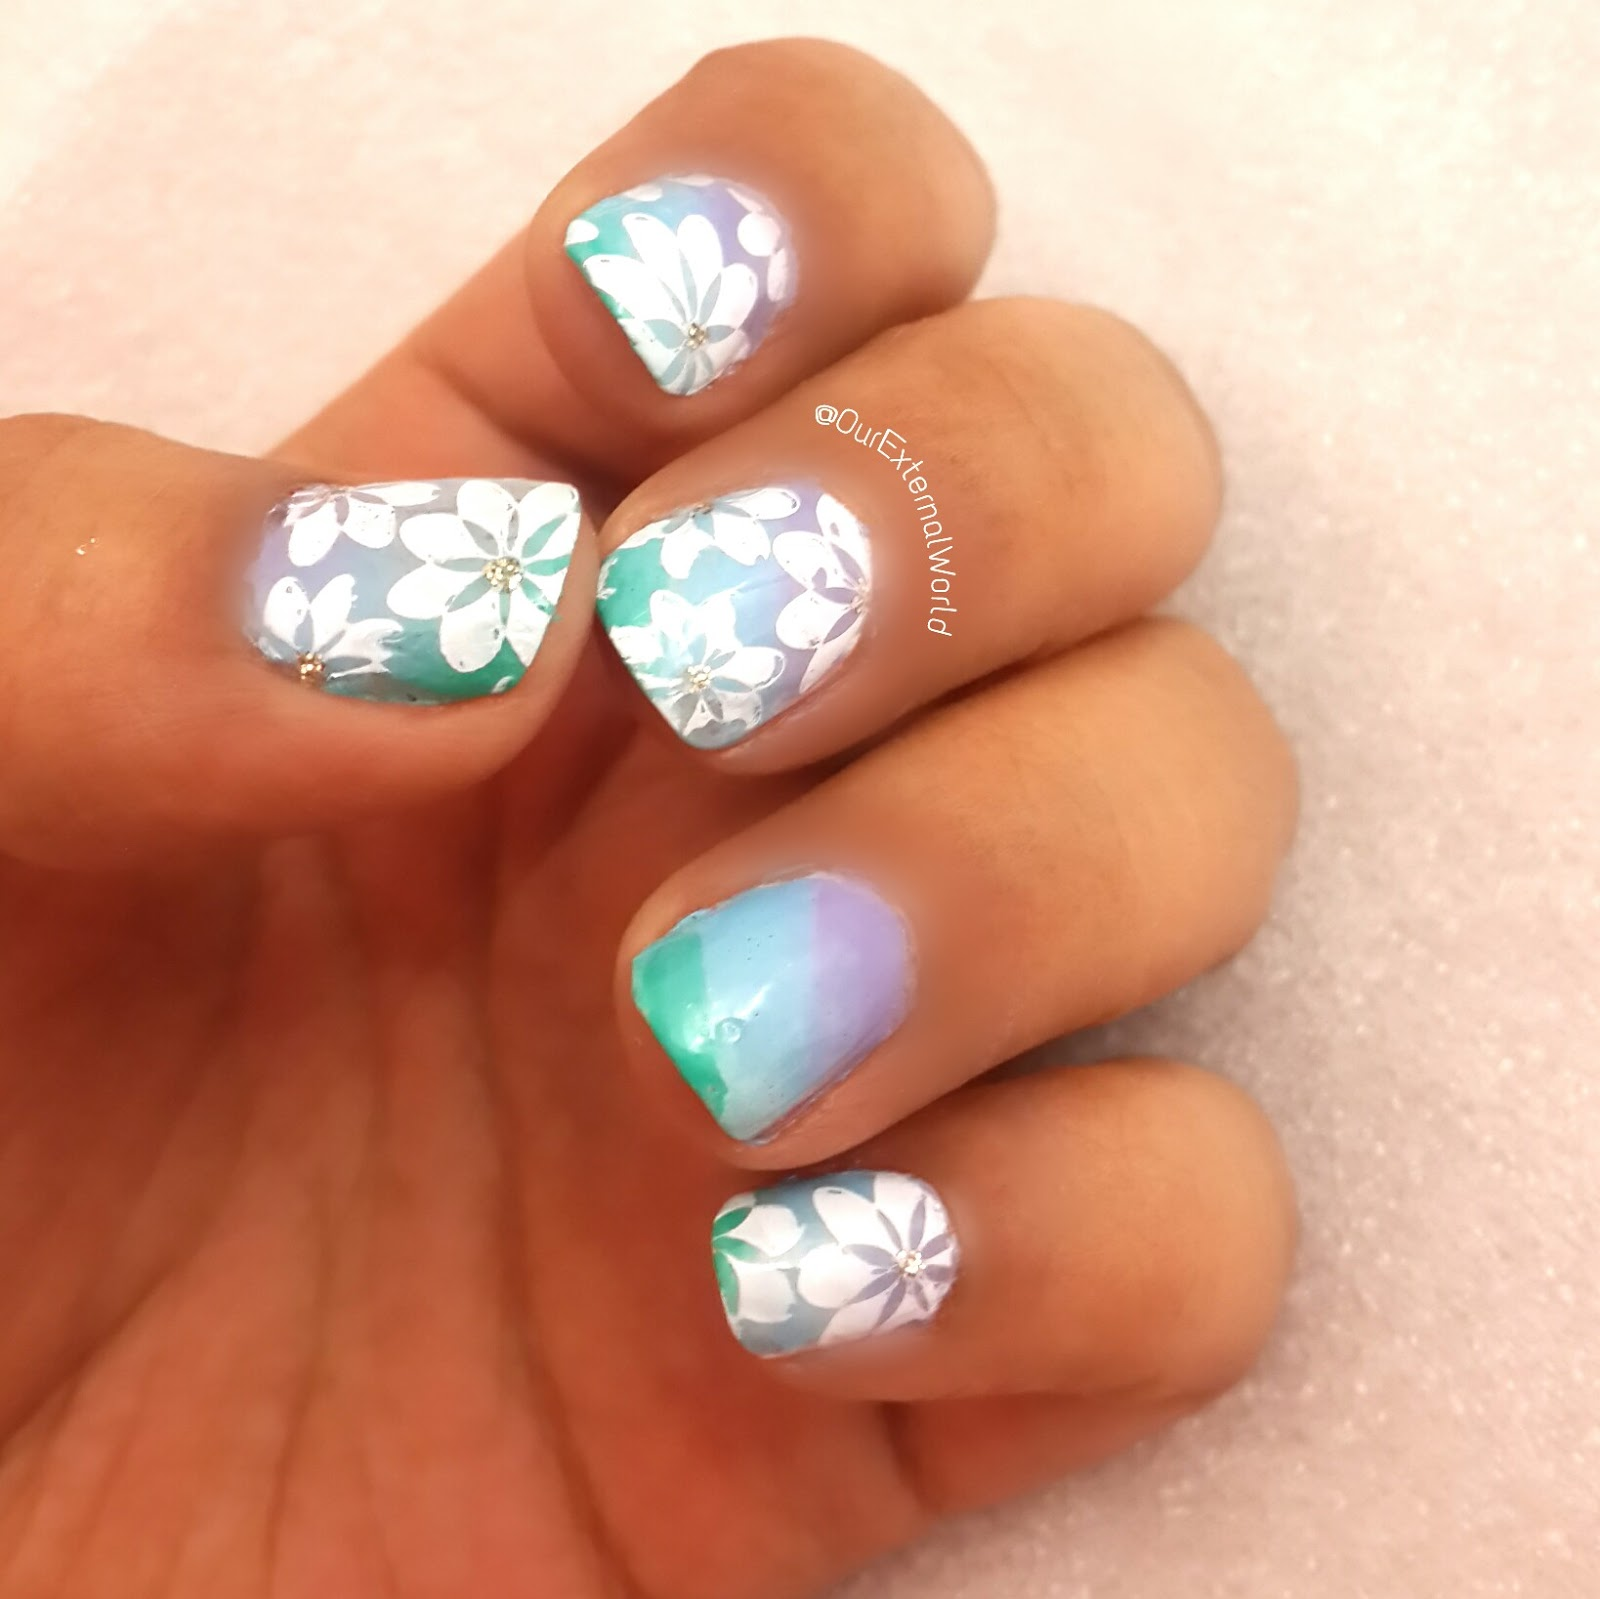 Gradient Nail Art: Diagonal Gradient Nail Art